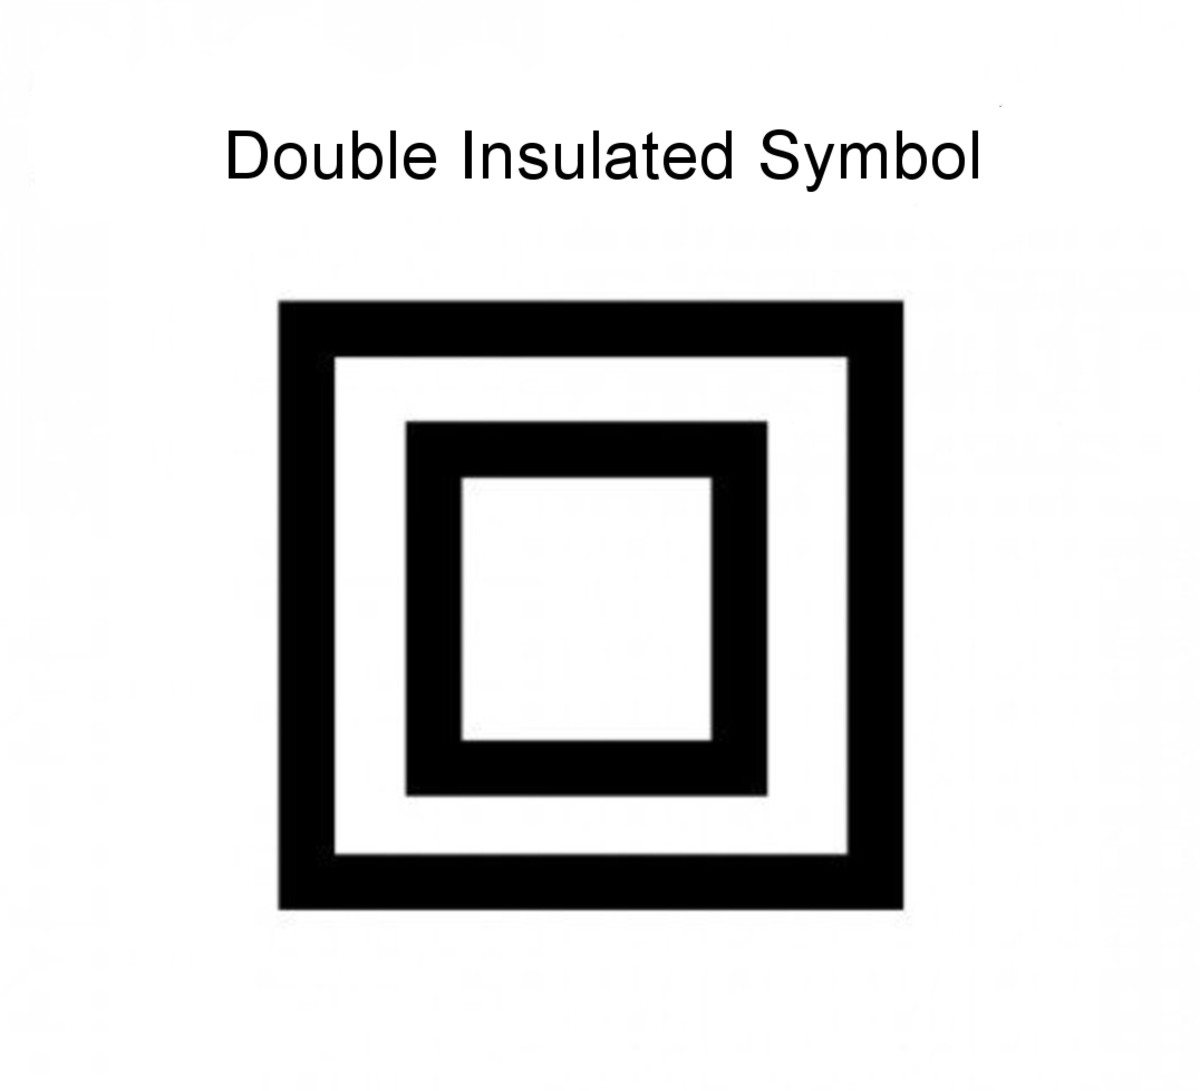 Double insulated appliances are marked with this symbol.